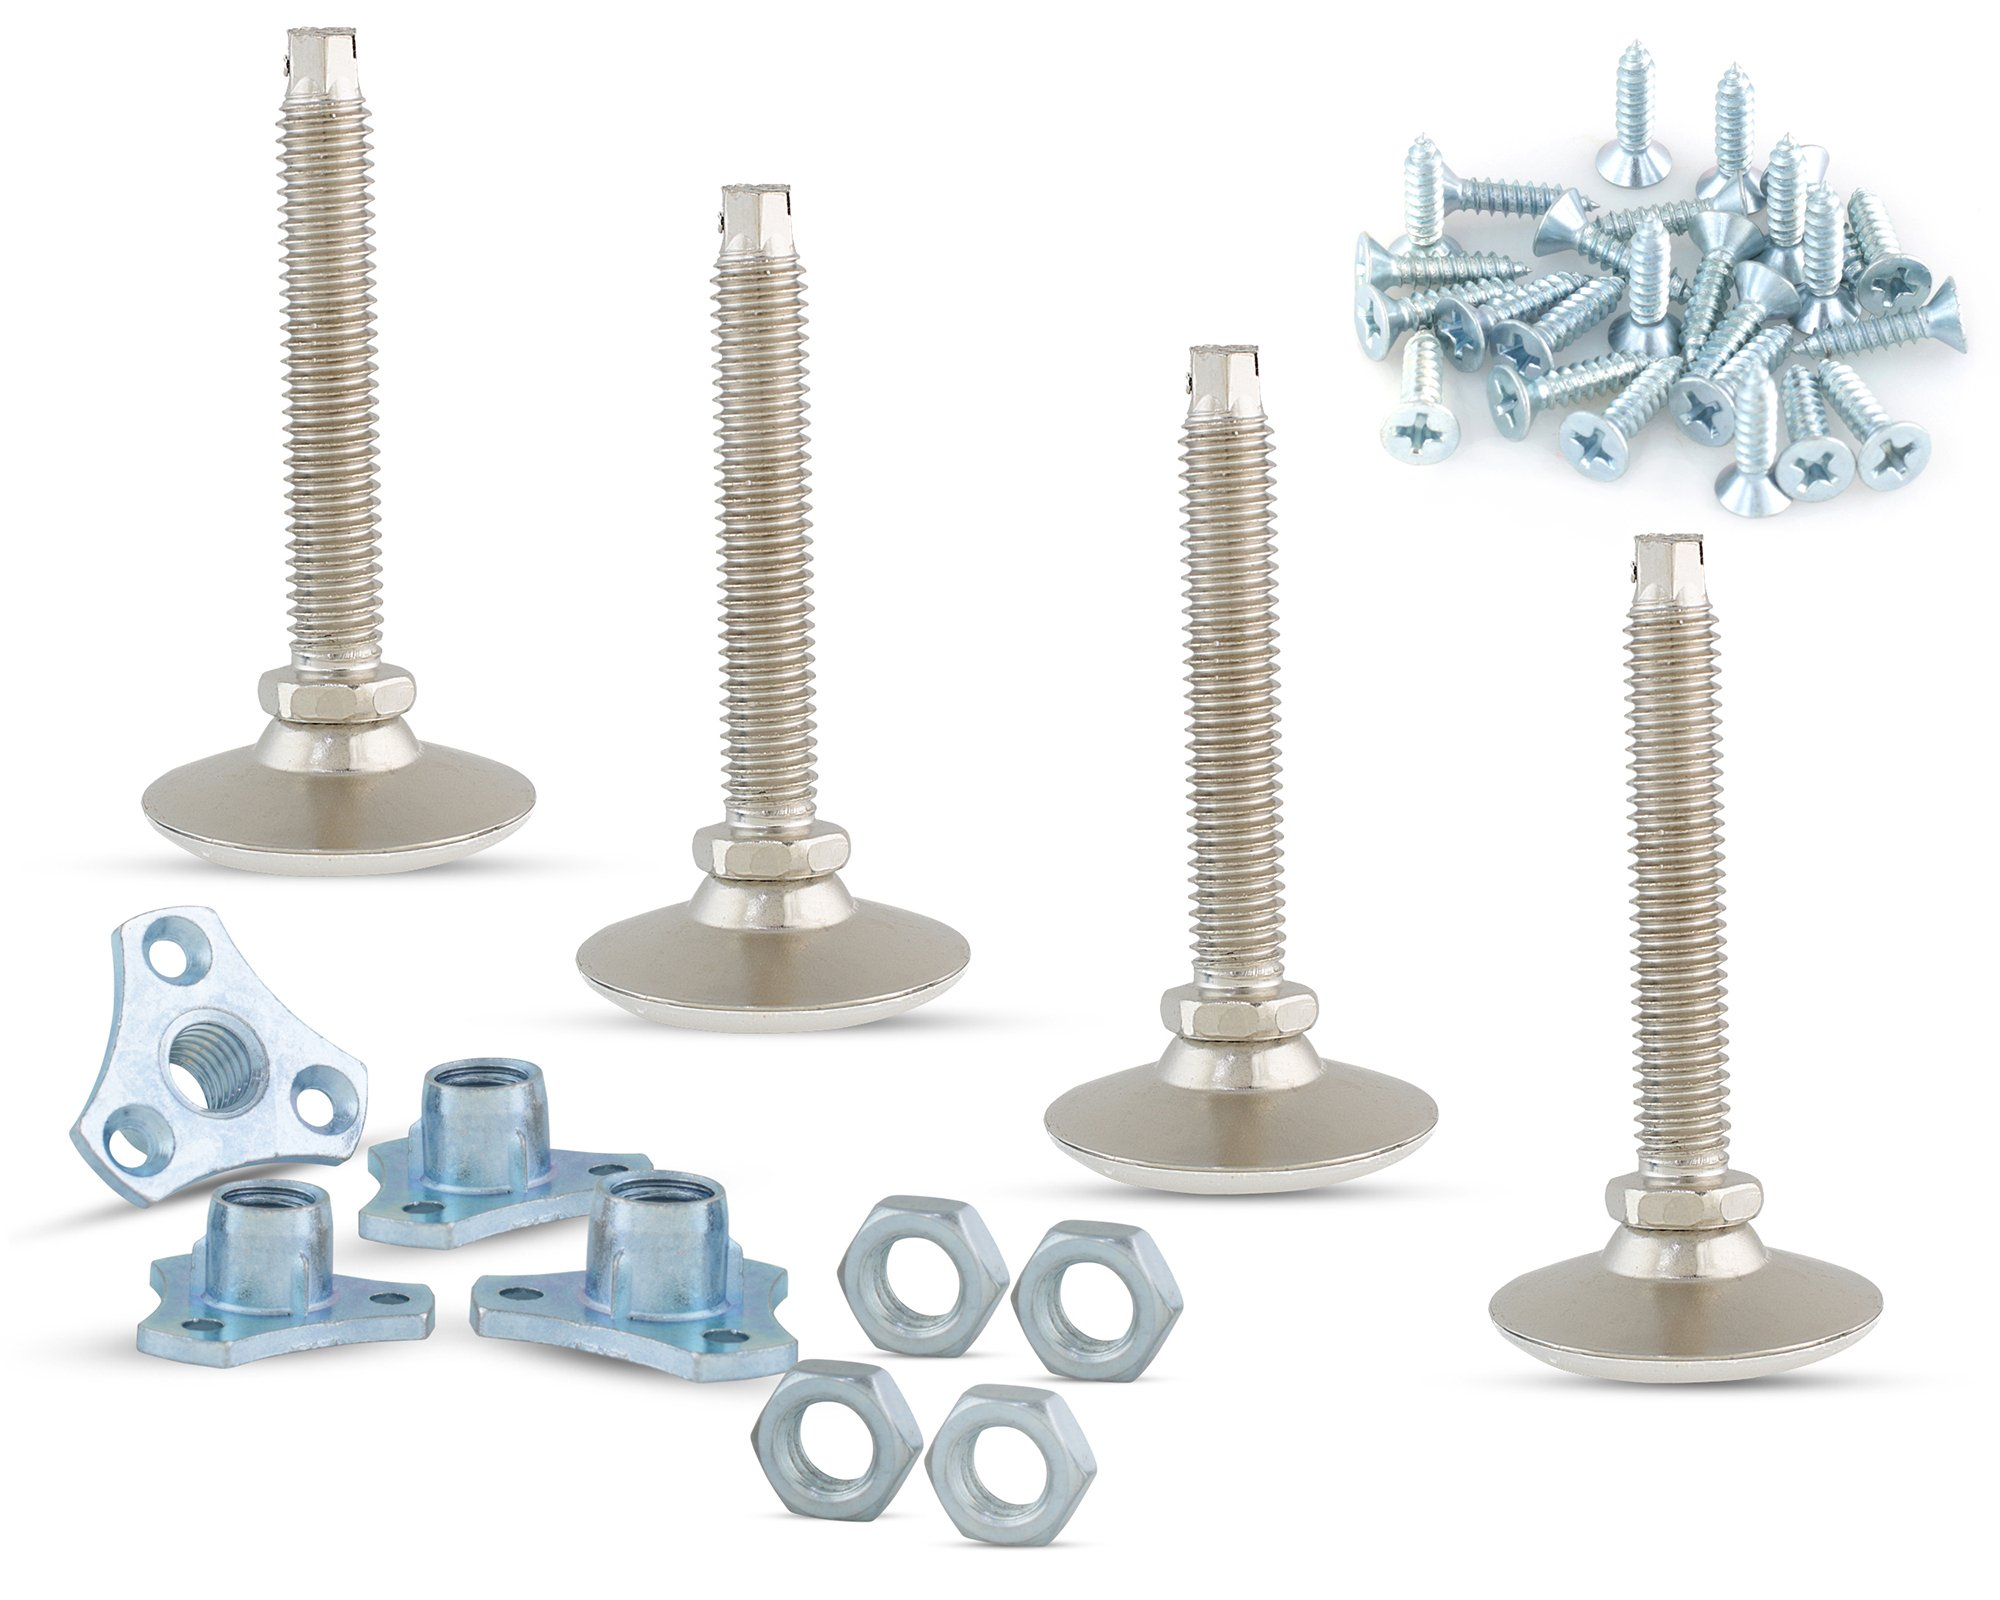 Furniture Leveler or Leg Extenders kit – 4-Pack of 3/8 Swivel Glide Leg levelers with Screw-on T-Nuts and Jam Nuts for Table or Cabinet Legs and Feet to Adjust Height